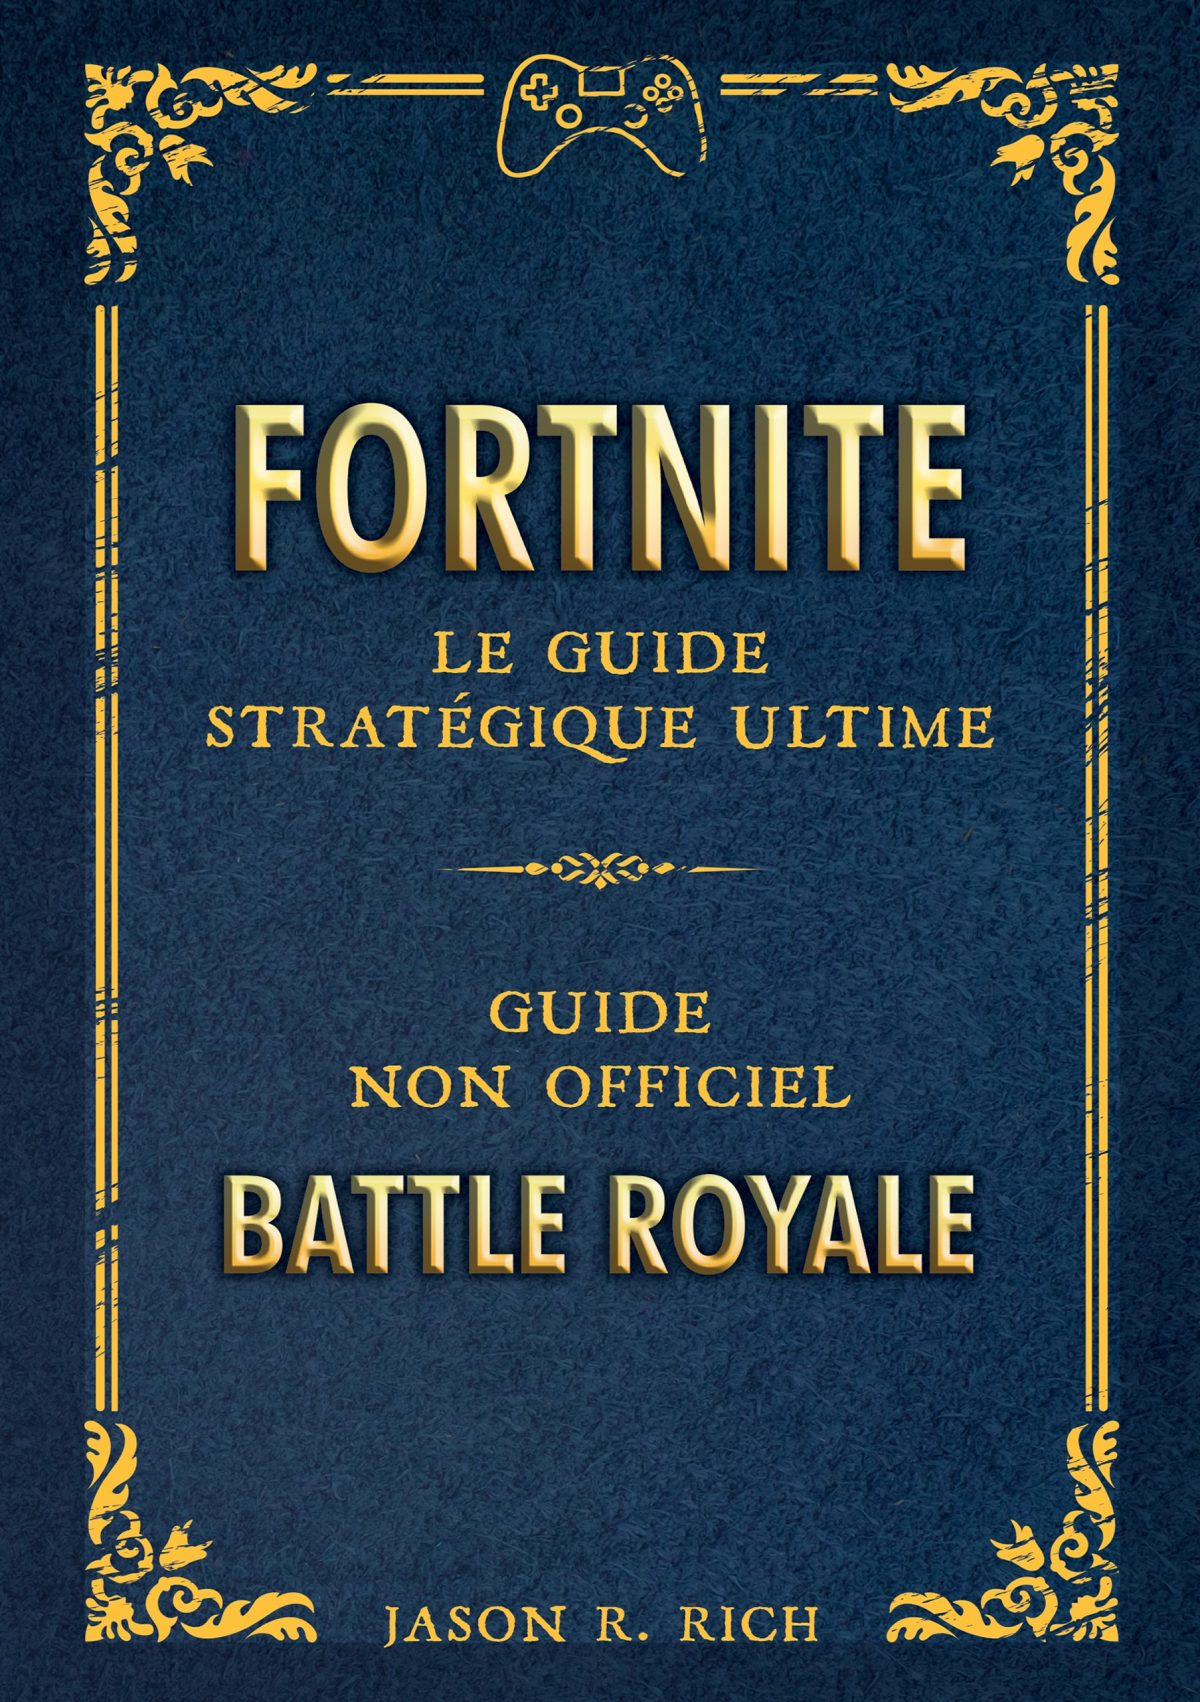 Fortnite : le guide stratégique ultime